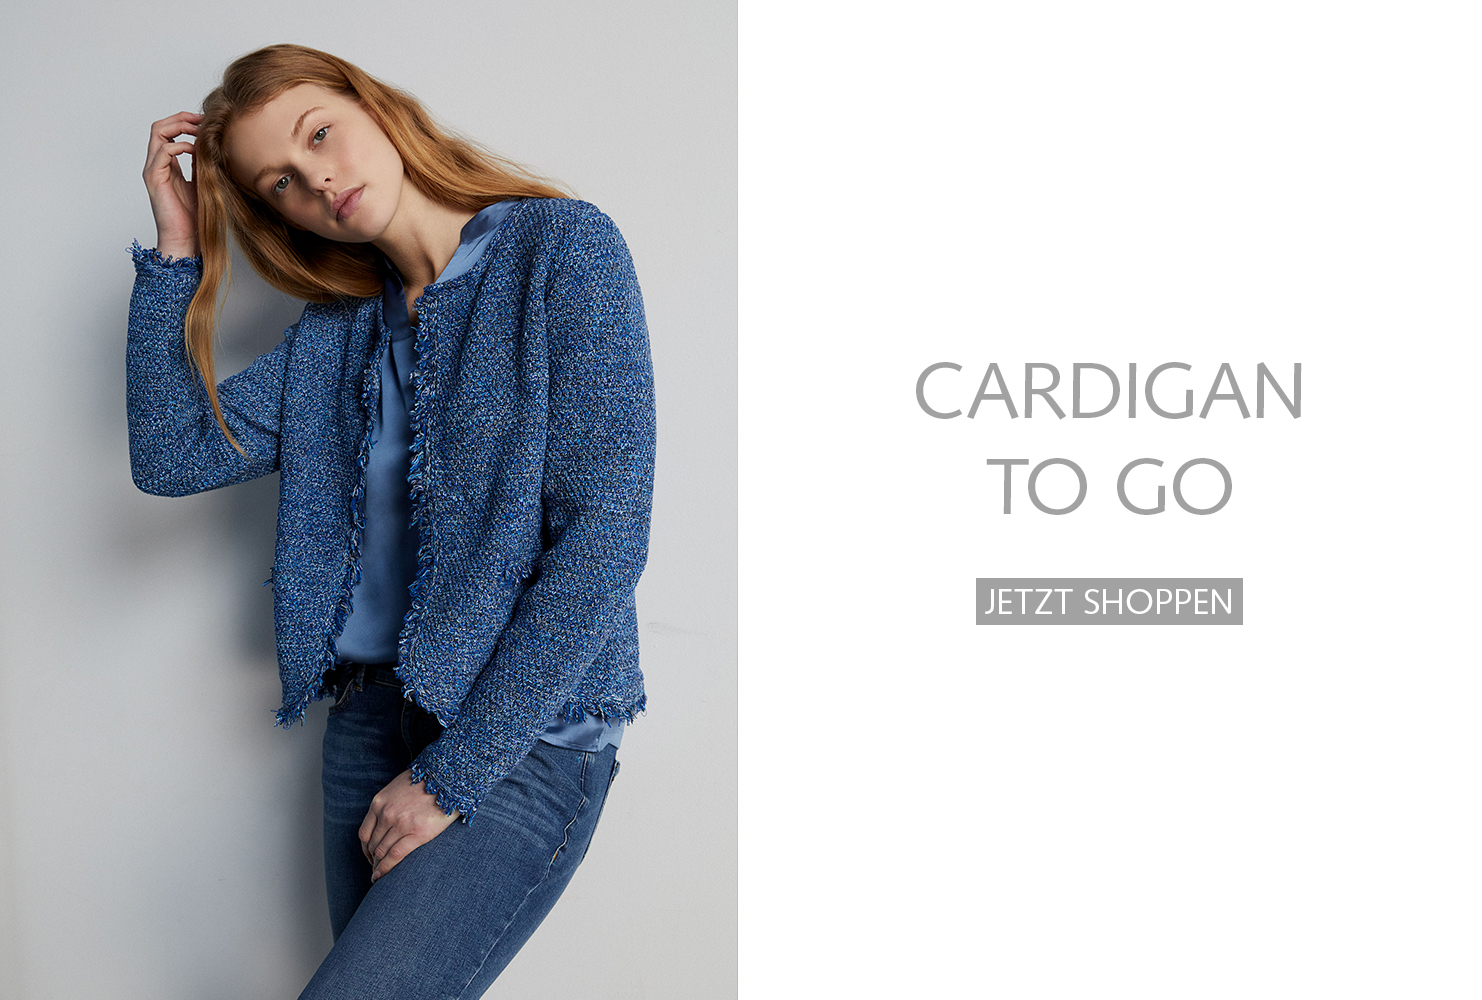 Cardigan to go